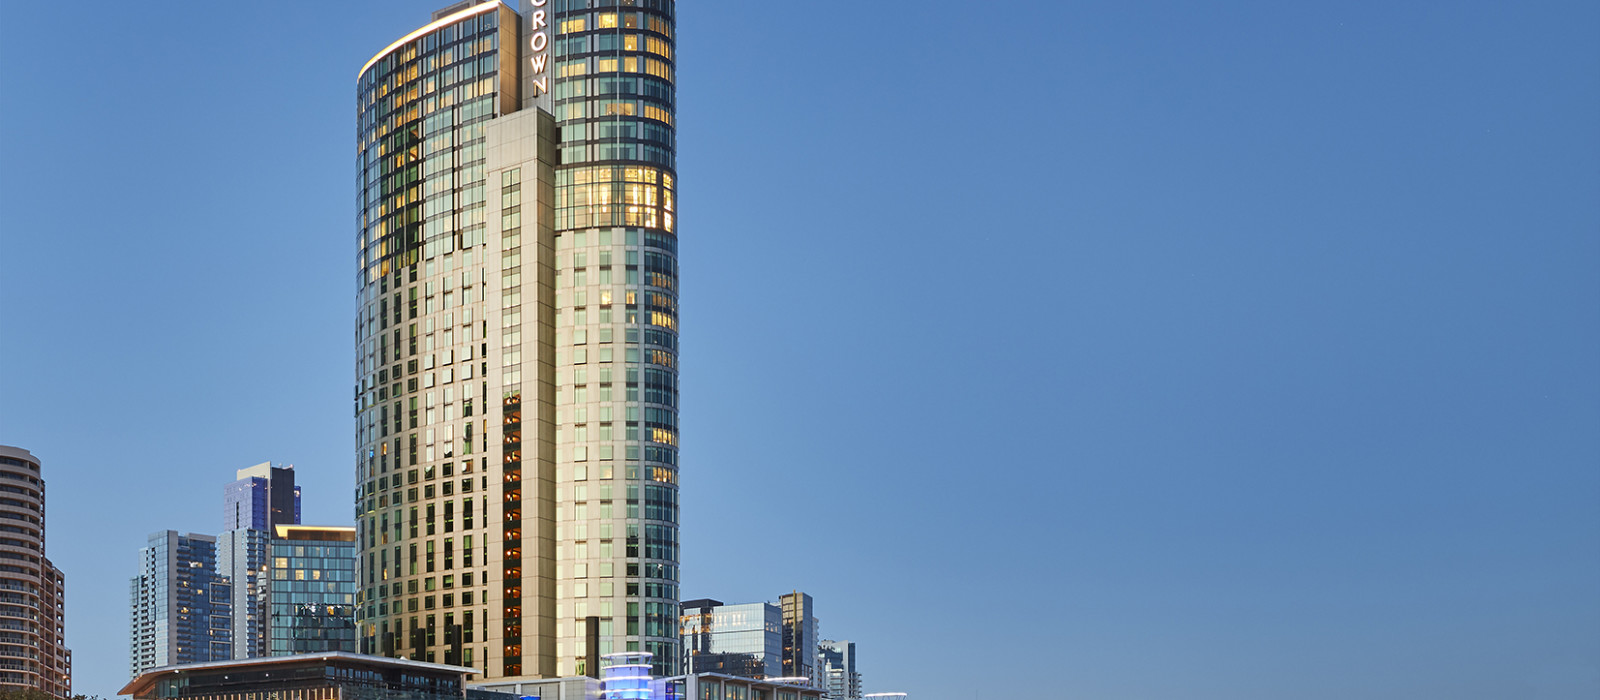 Hotel Crown Towers  Melbourne Australien